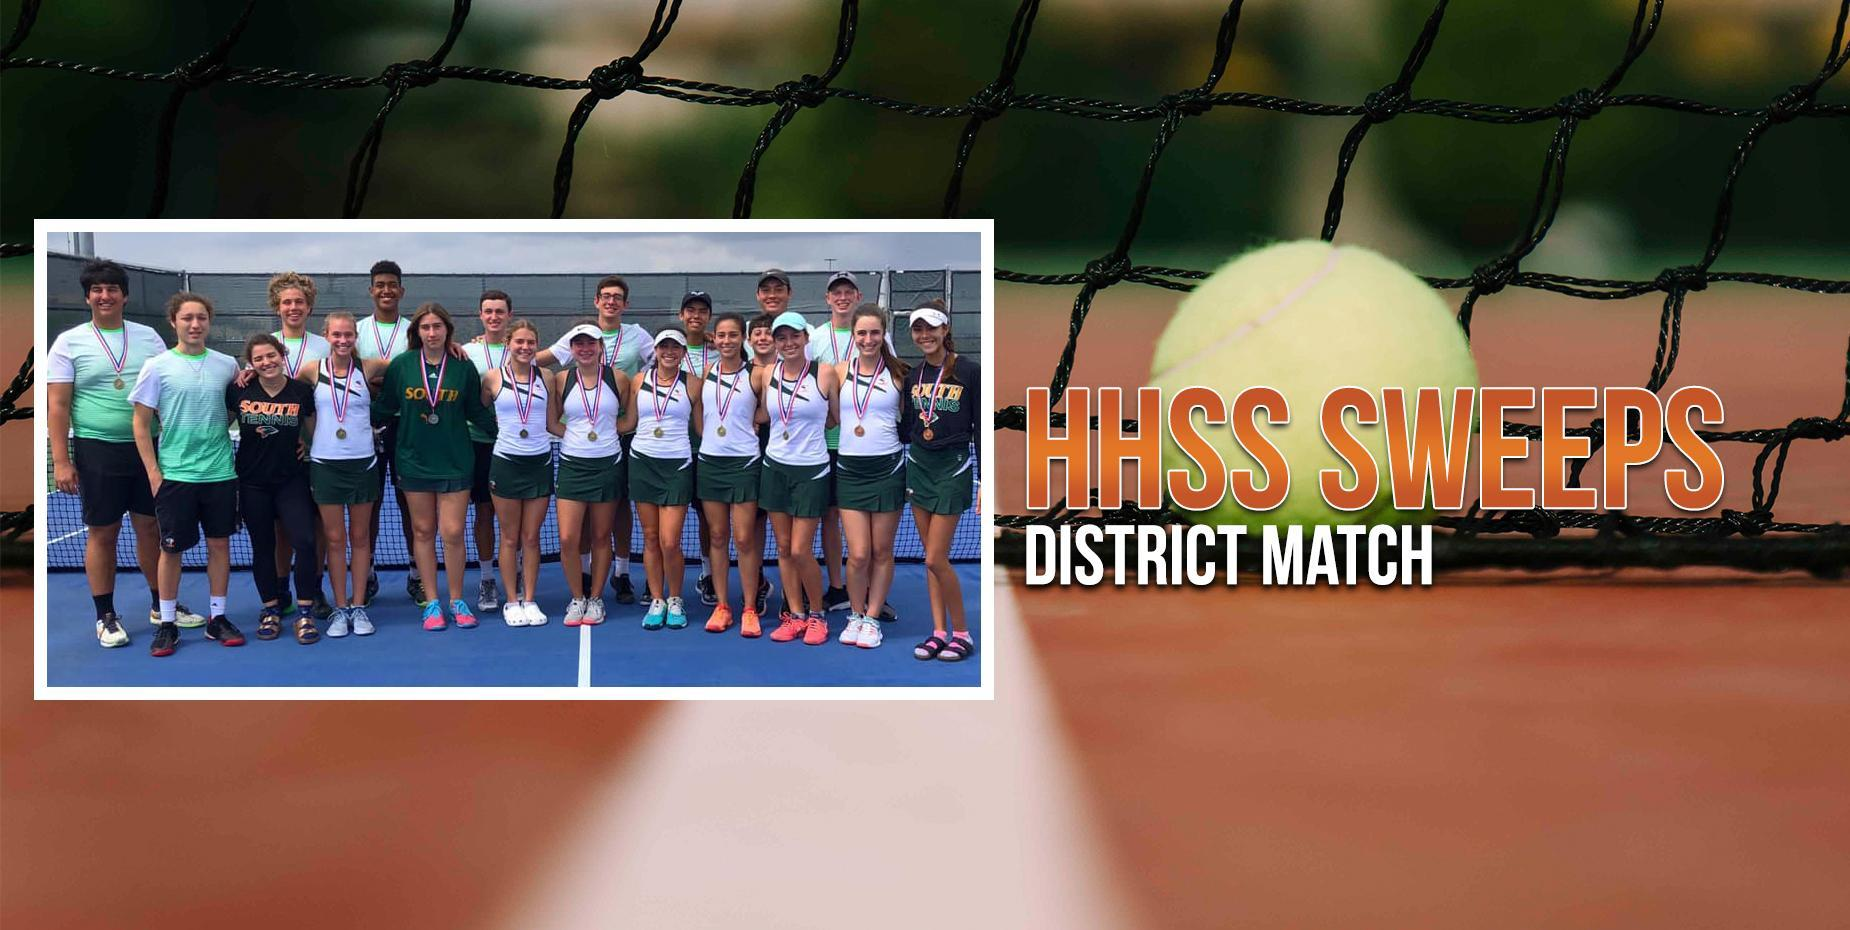 HHSS Sweeps District Match